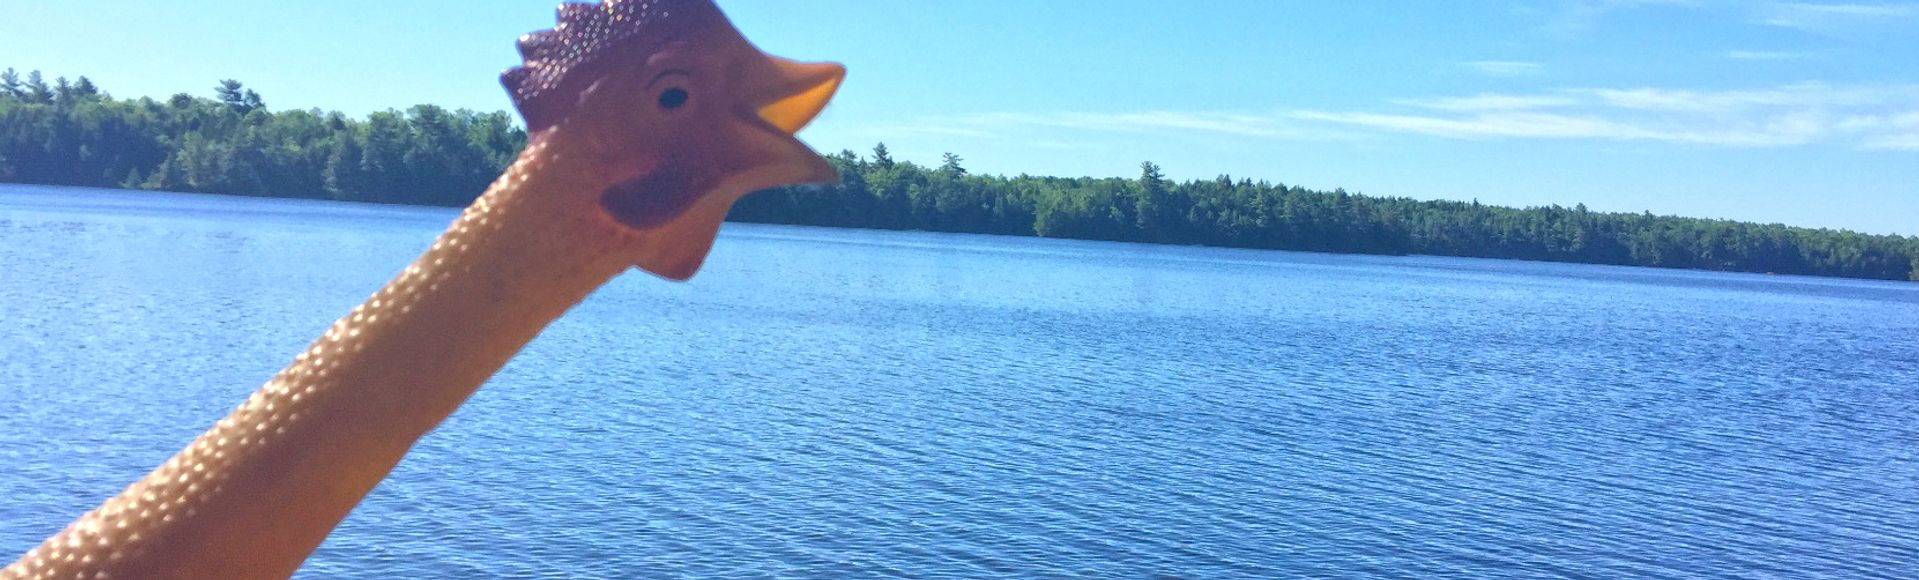 rubber chicken in front of lake landscape outdoors